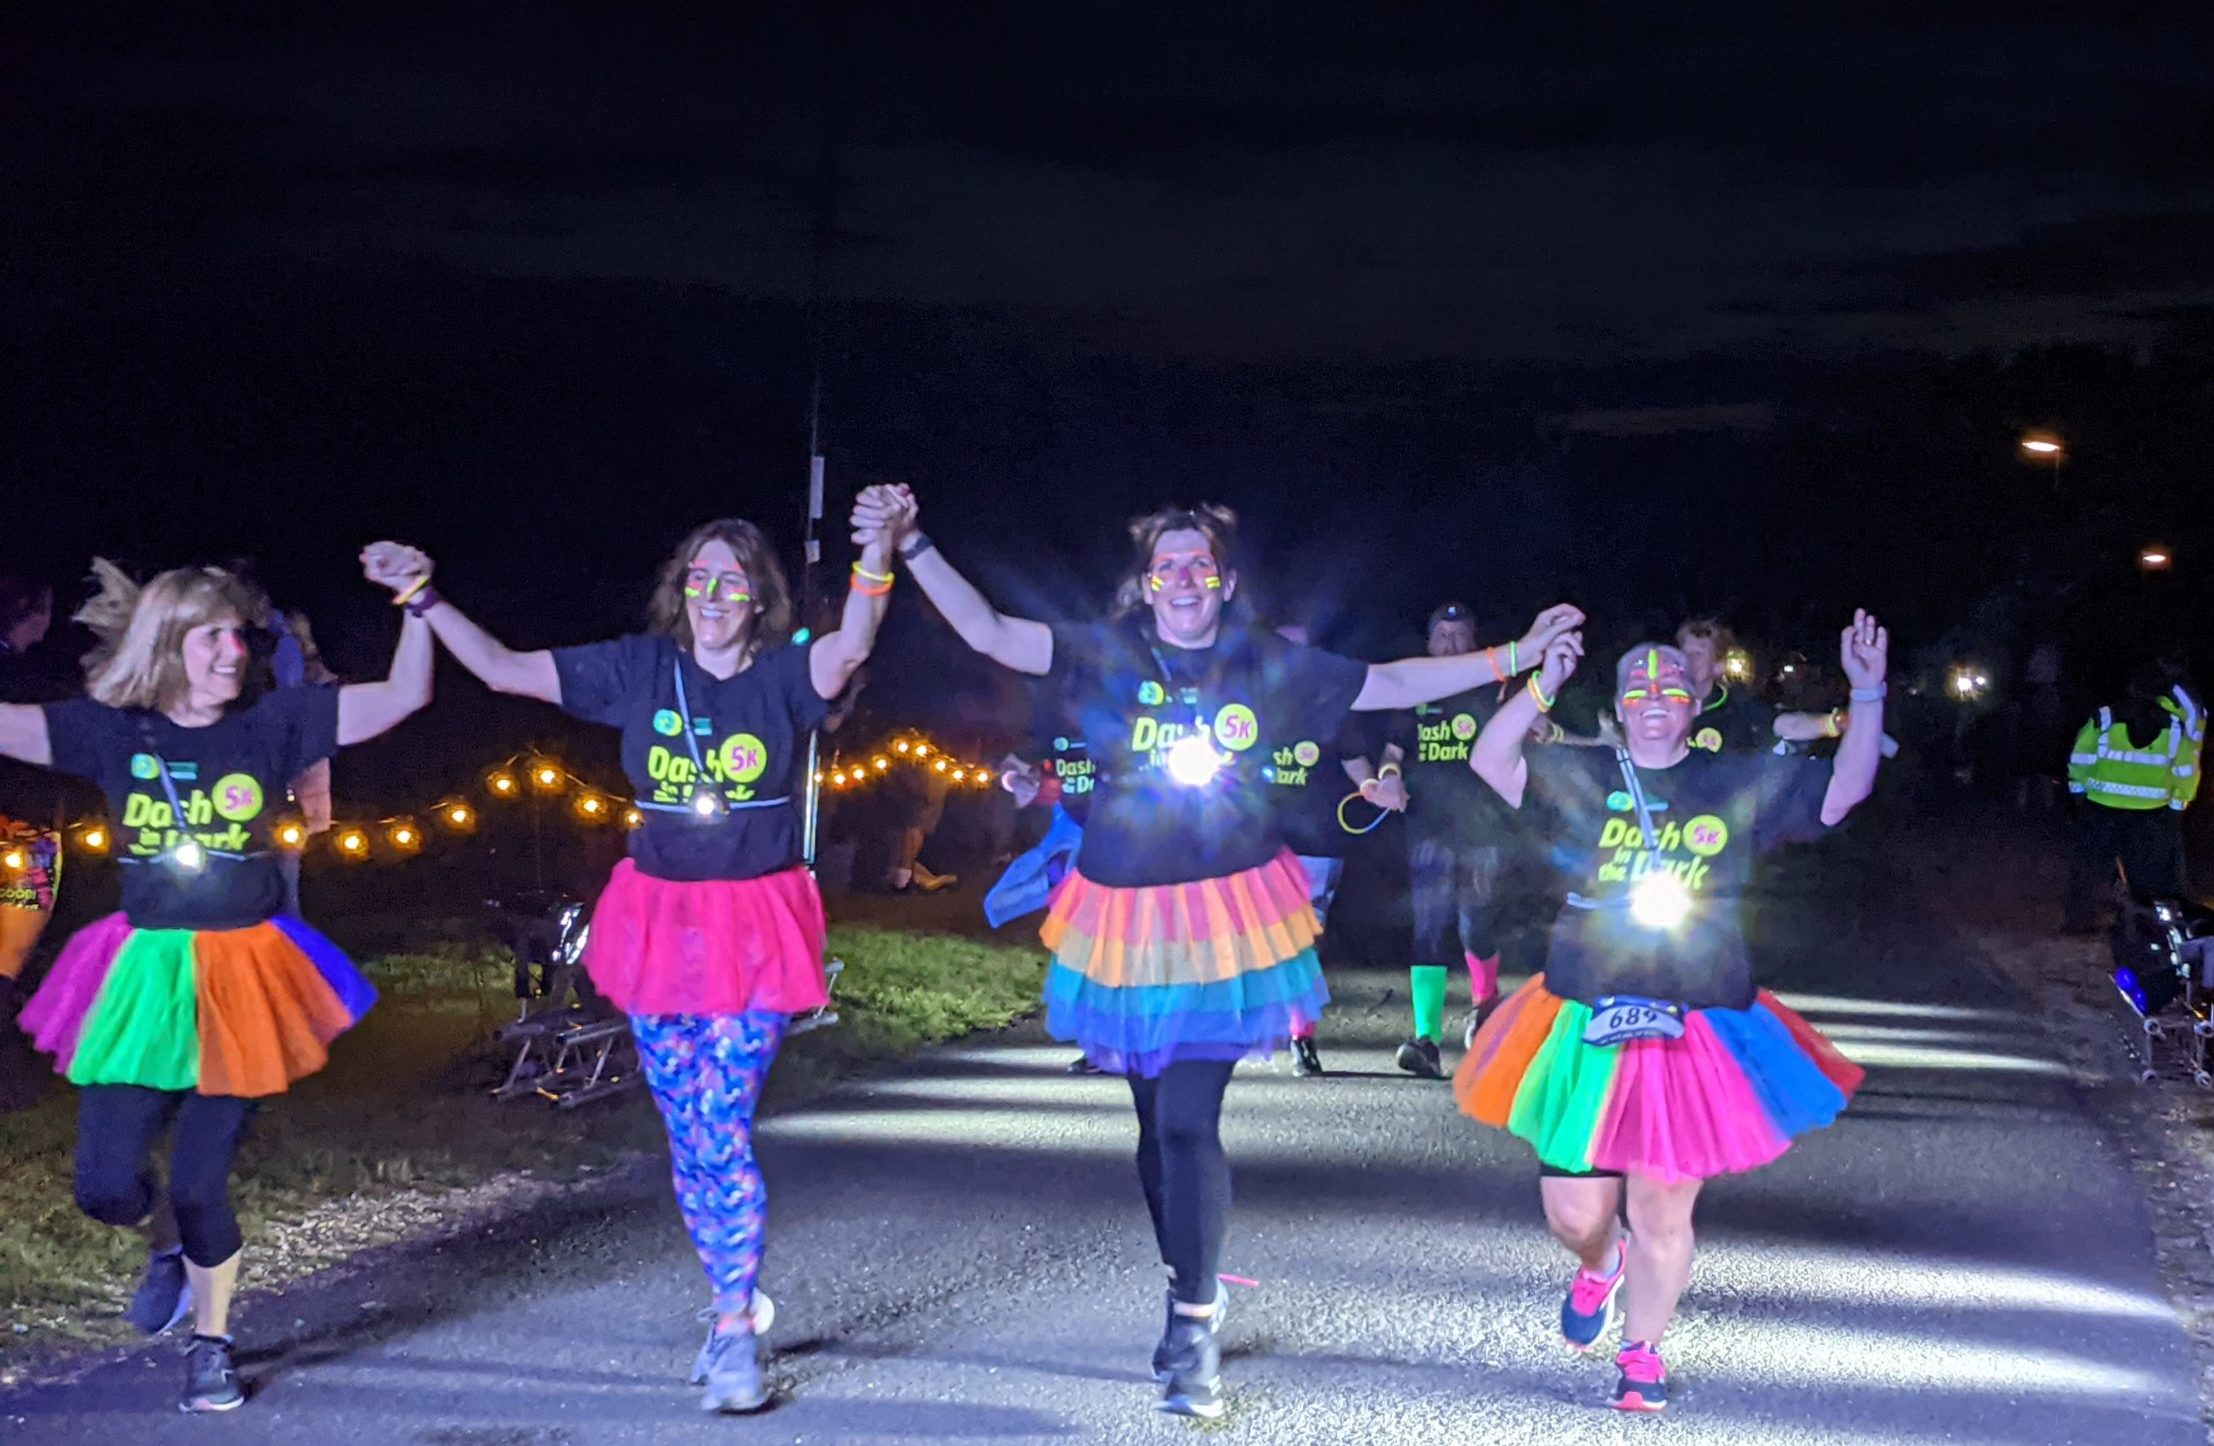 Dash in the Dark event - Four women dressed in florescent tutus and lights celebrate running across the finish line